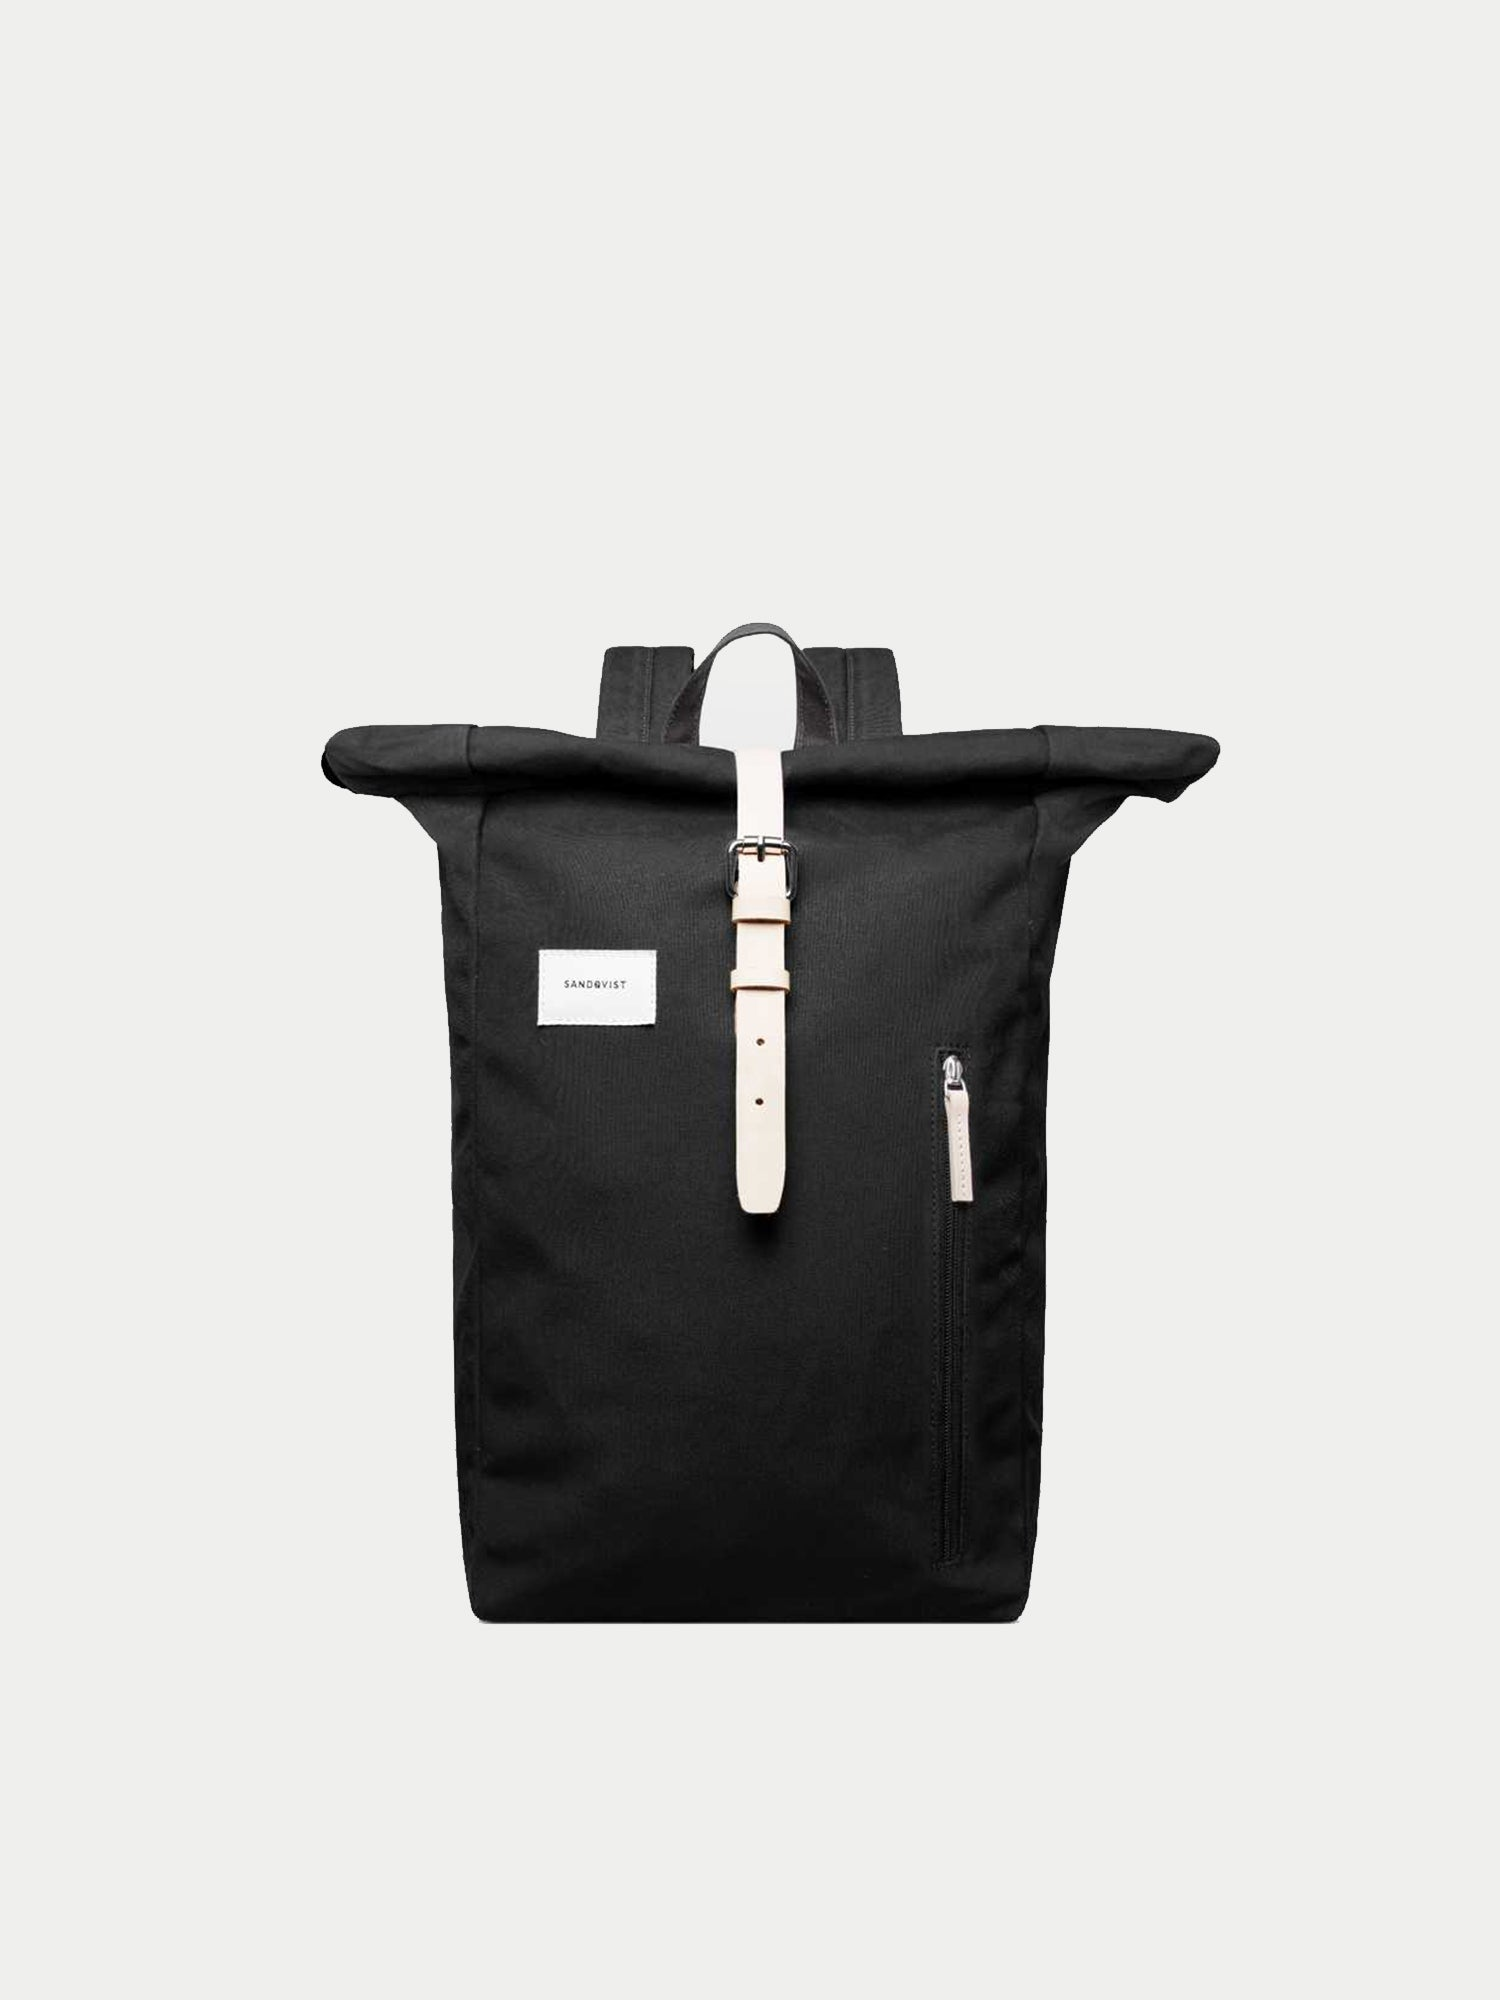 Sandqvist Dante Rolltop Backpack (Black & Natural) 1